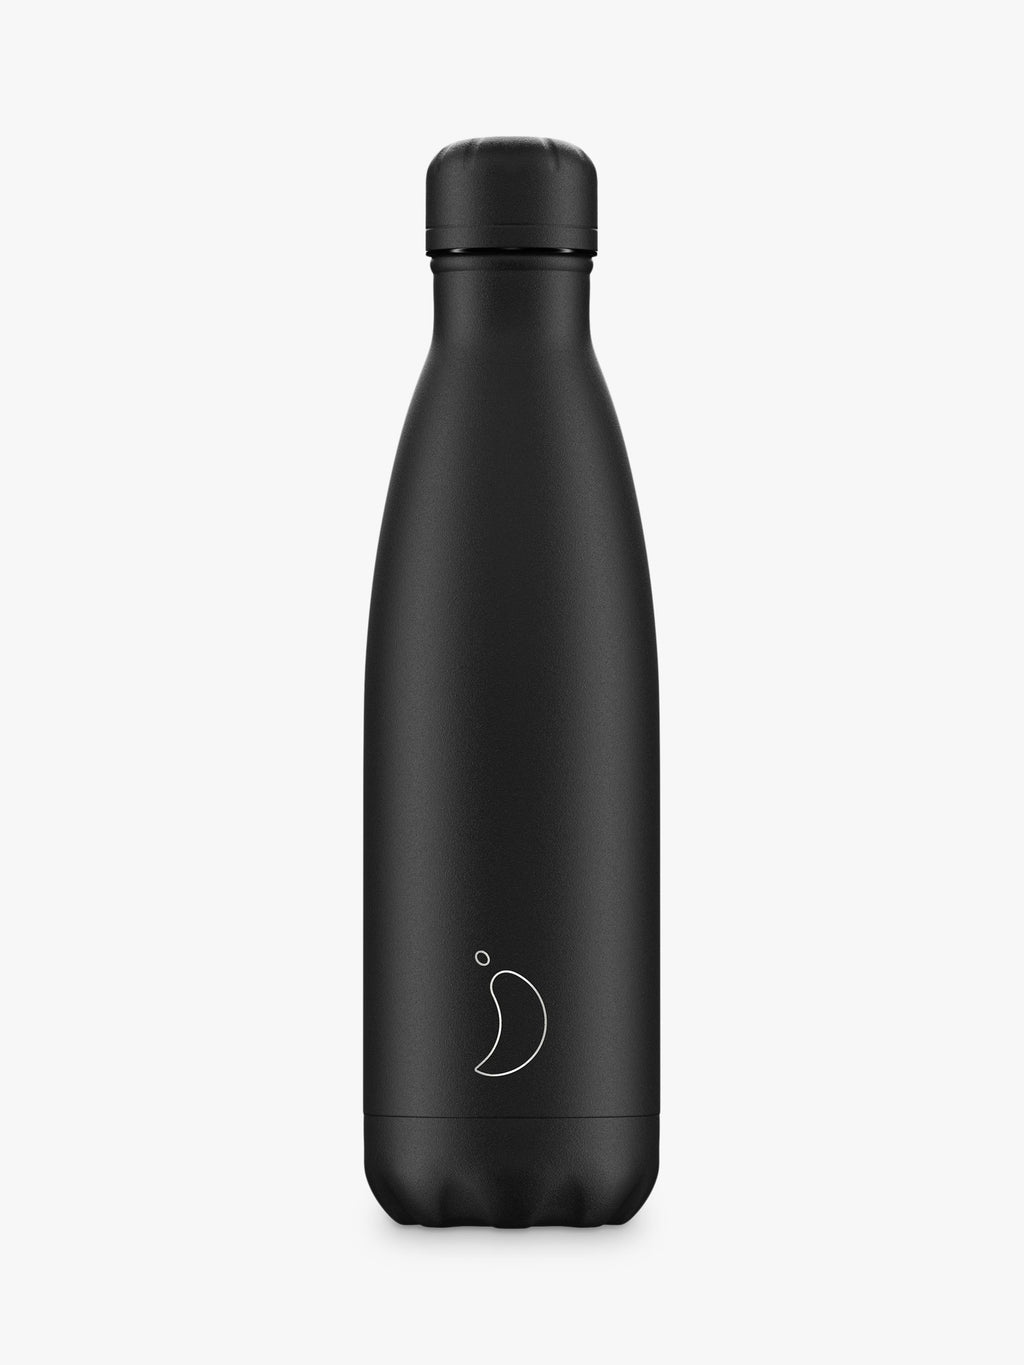 Monochrome edition all black chilly bottle - 500ml